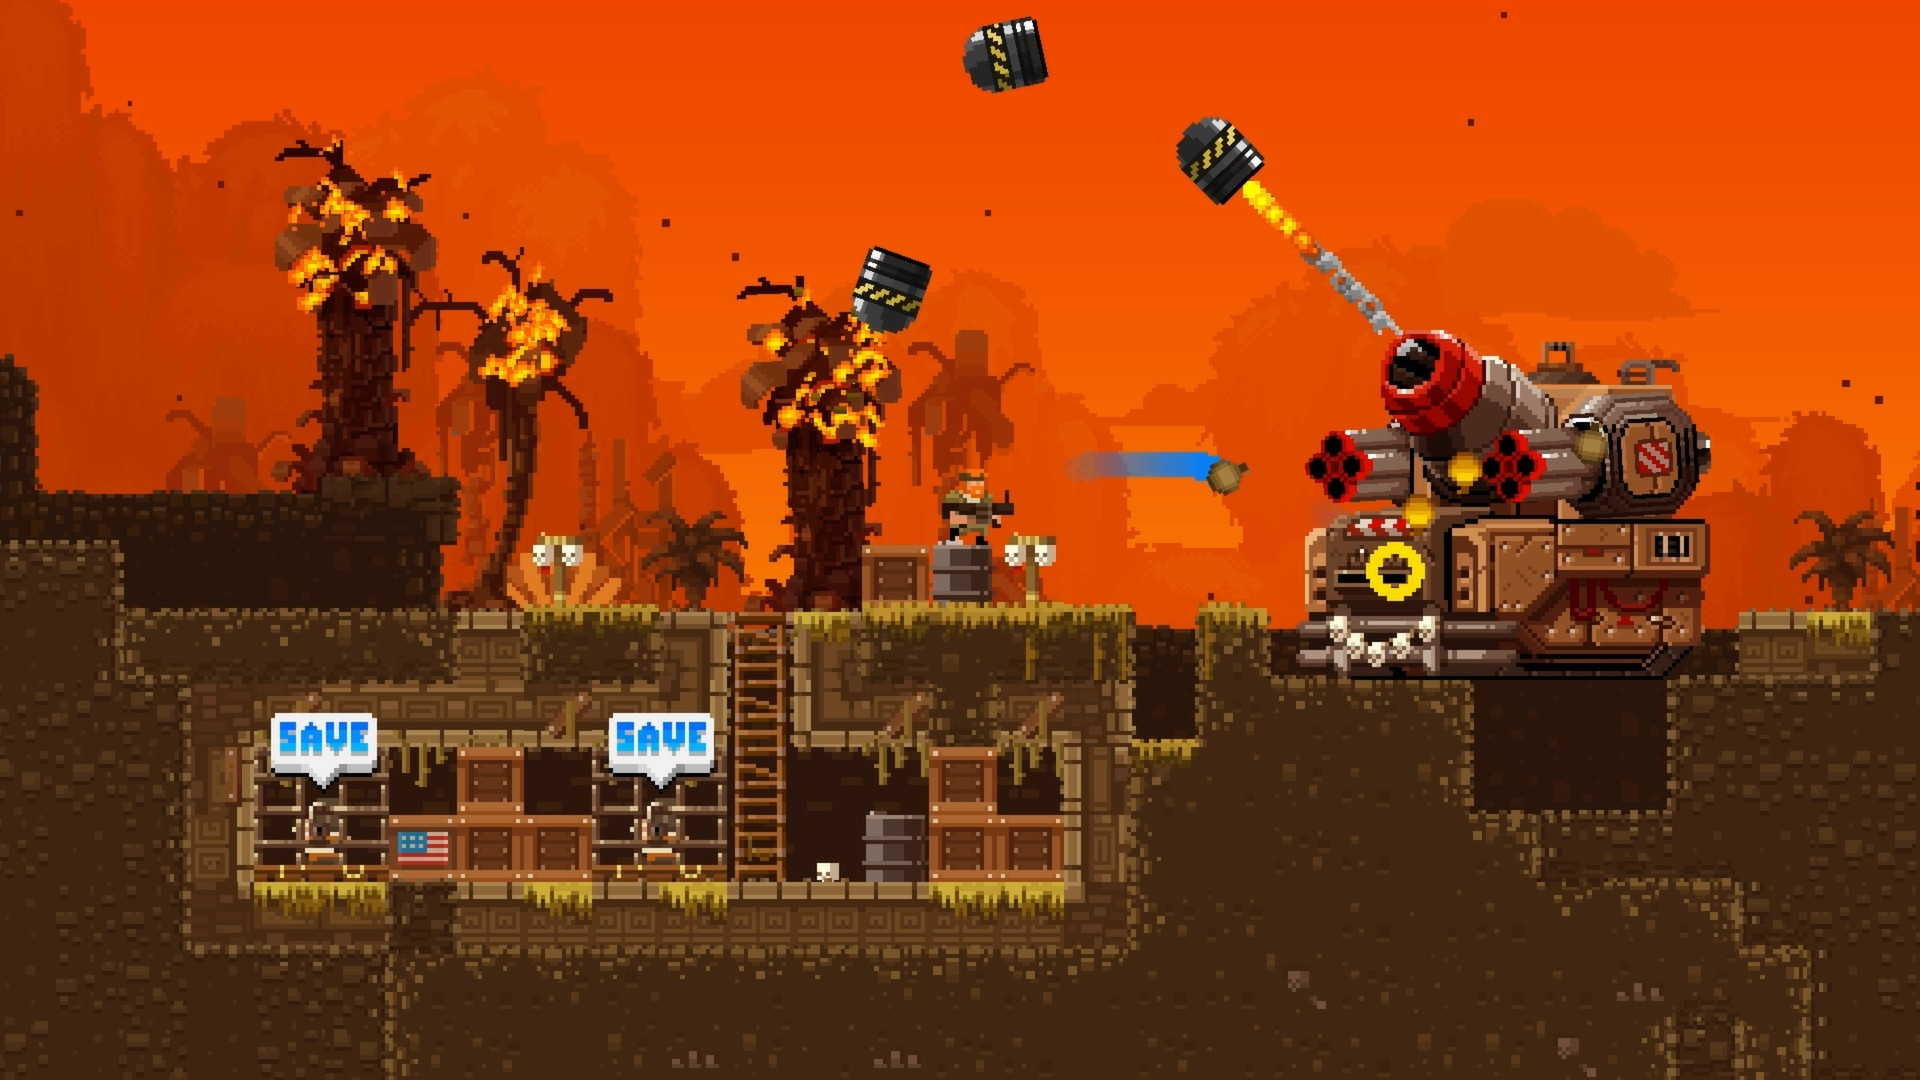 2D, Action, adventure, Broforce, Broforce Review, Devolver Digital, Free Lives, Nintendo Switch, Nintendo Switch Review, Platformer, Rating 9/10, Sidescroller, Switch Review